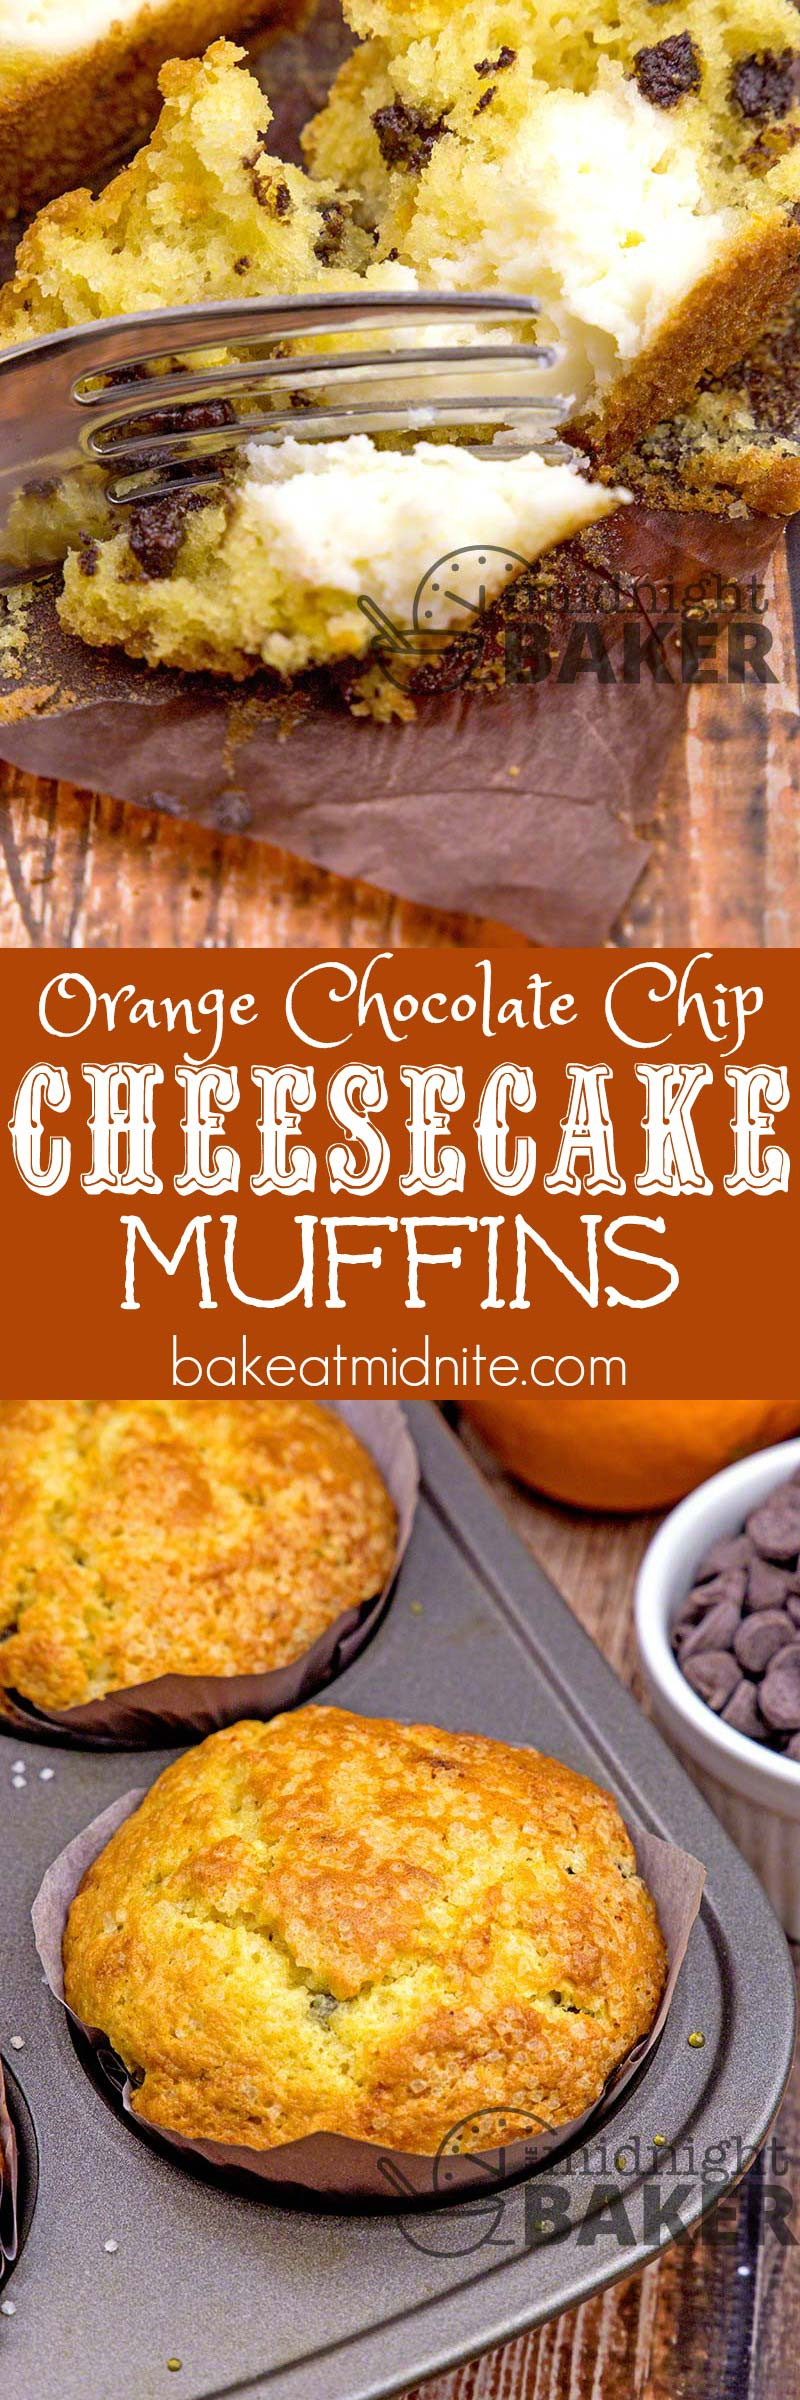 Just a hint of orange with dark chocolate chips make these muffins special and really over-the-top with a creamy cheesecake filling!